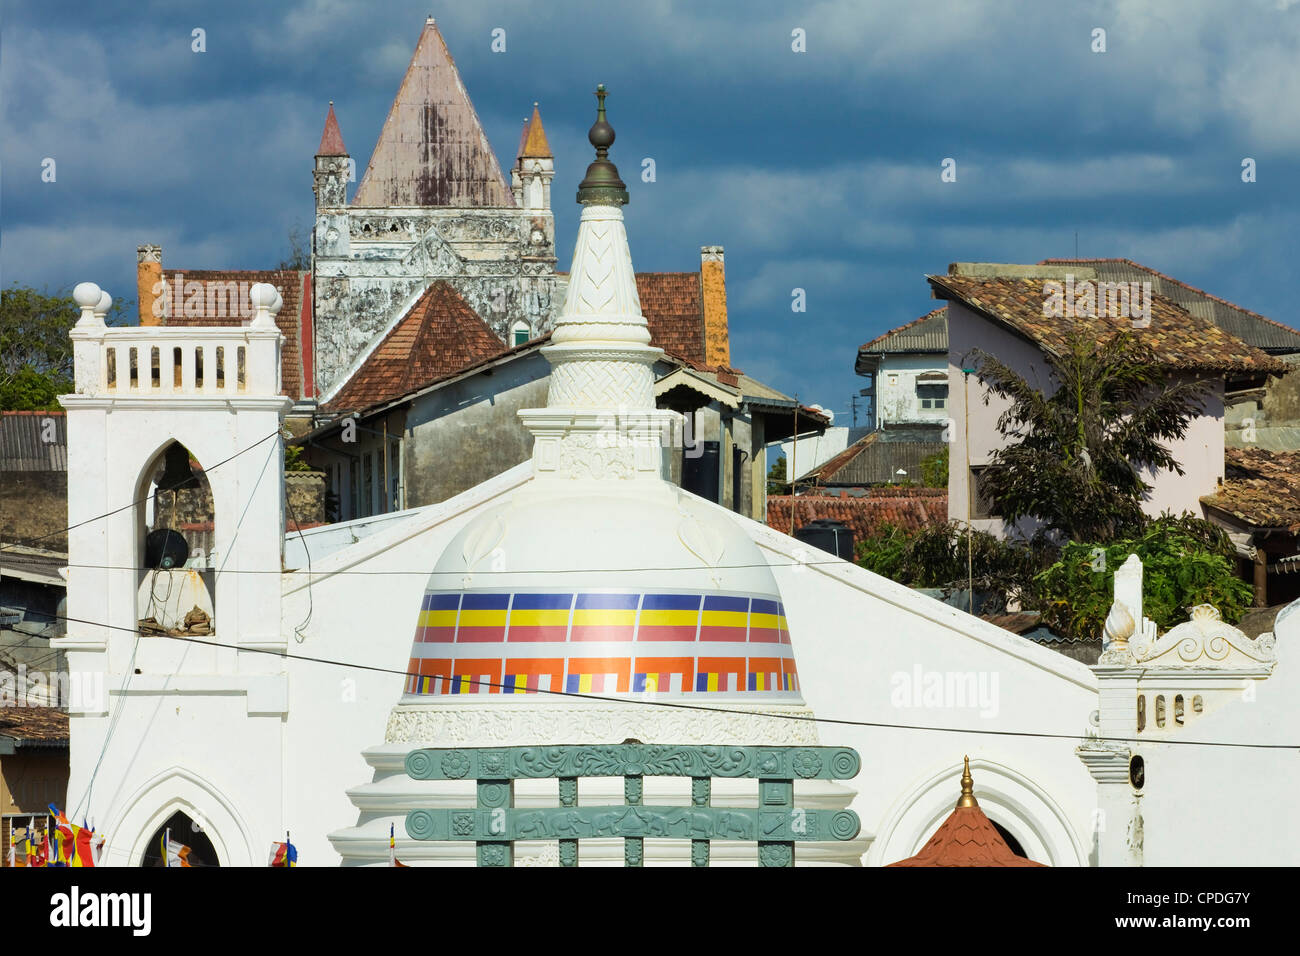 Shri Sudarmalaya Buddhist Temple and All Saints Anglican Church inside the old colonial Dutch Fort, Galle, Sri Lanka, - Stock Image